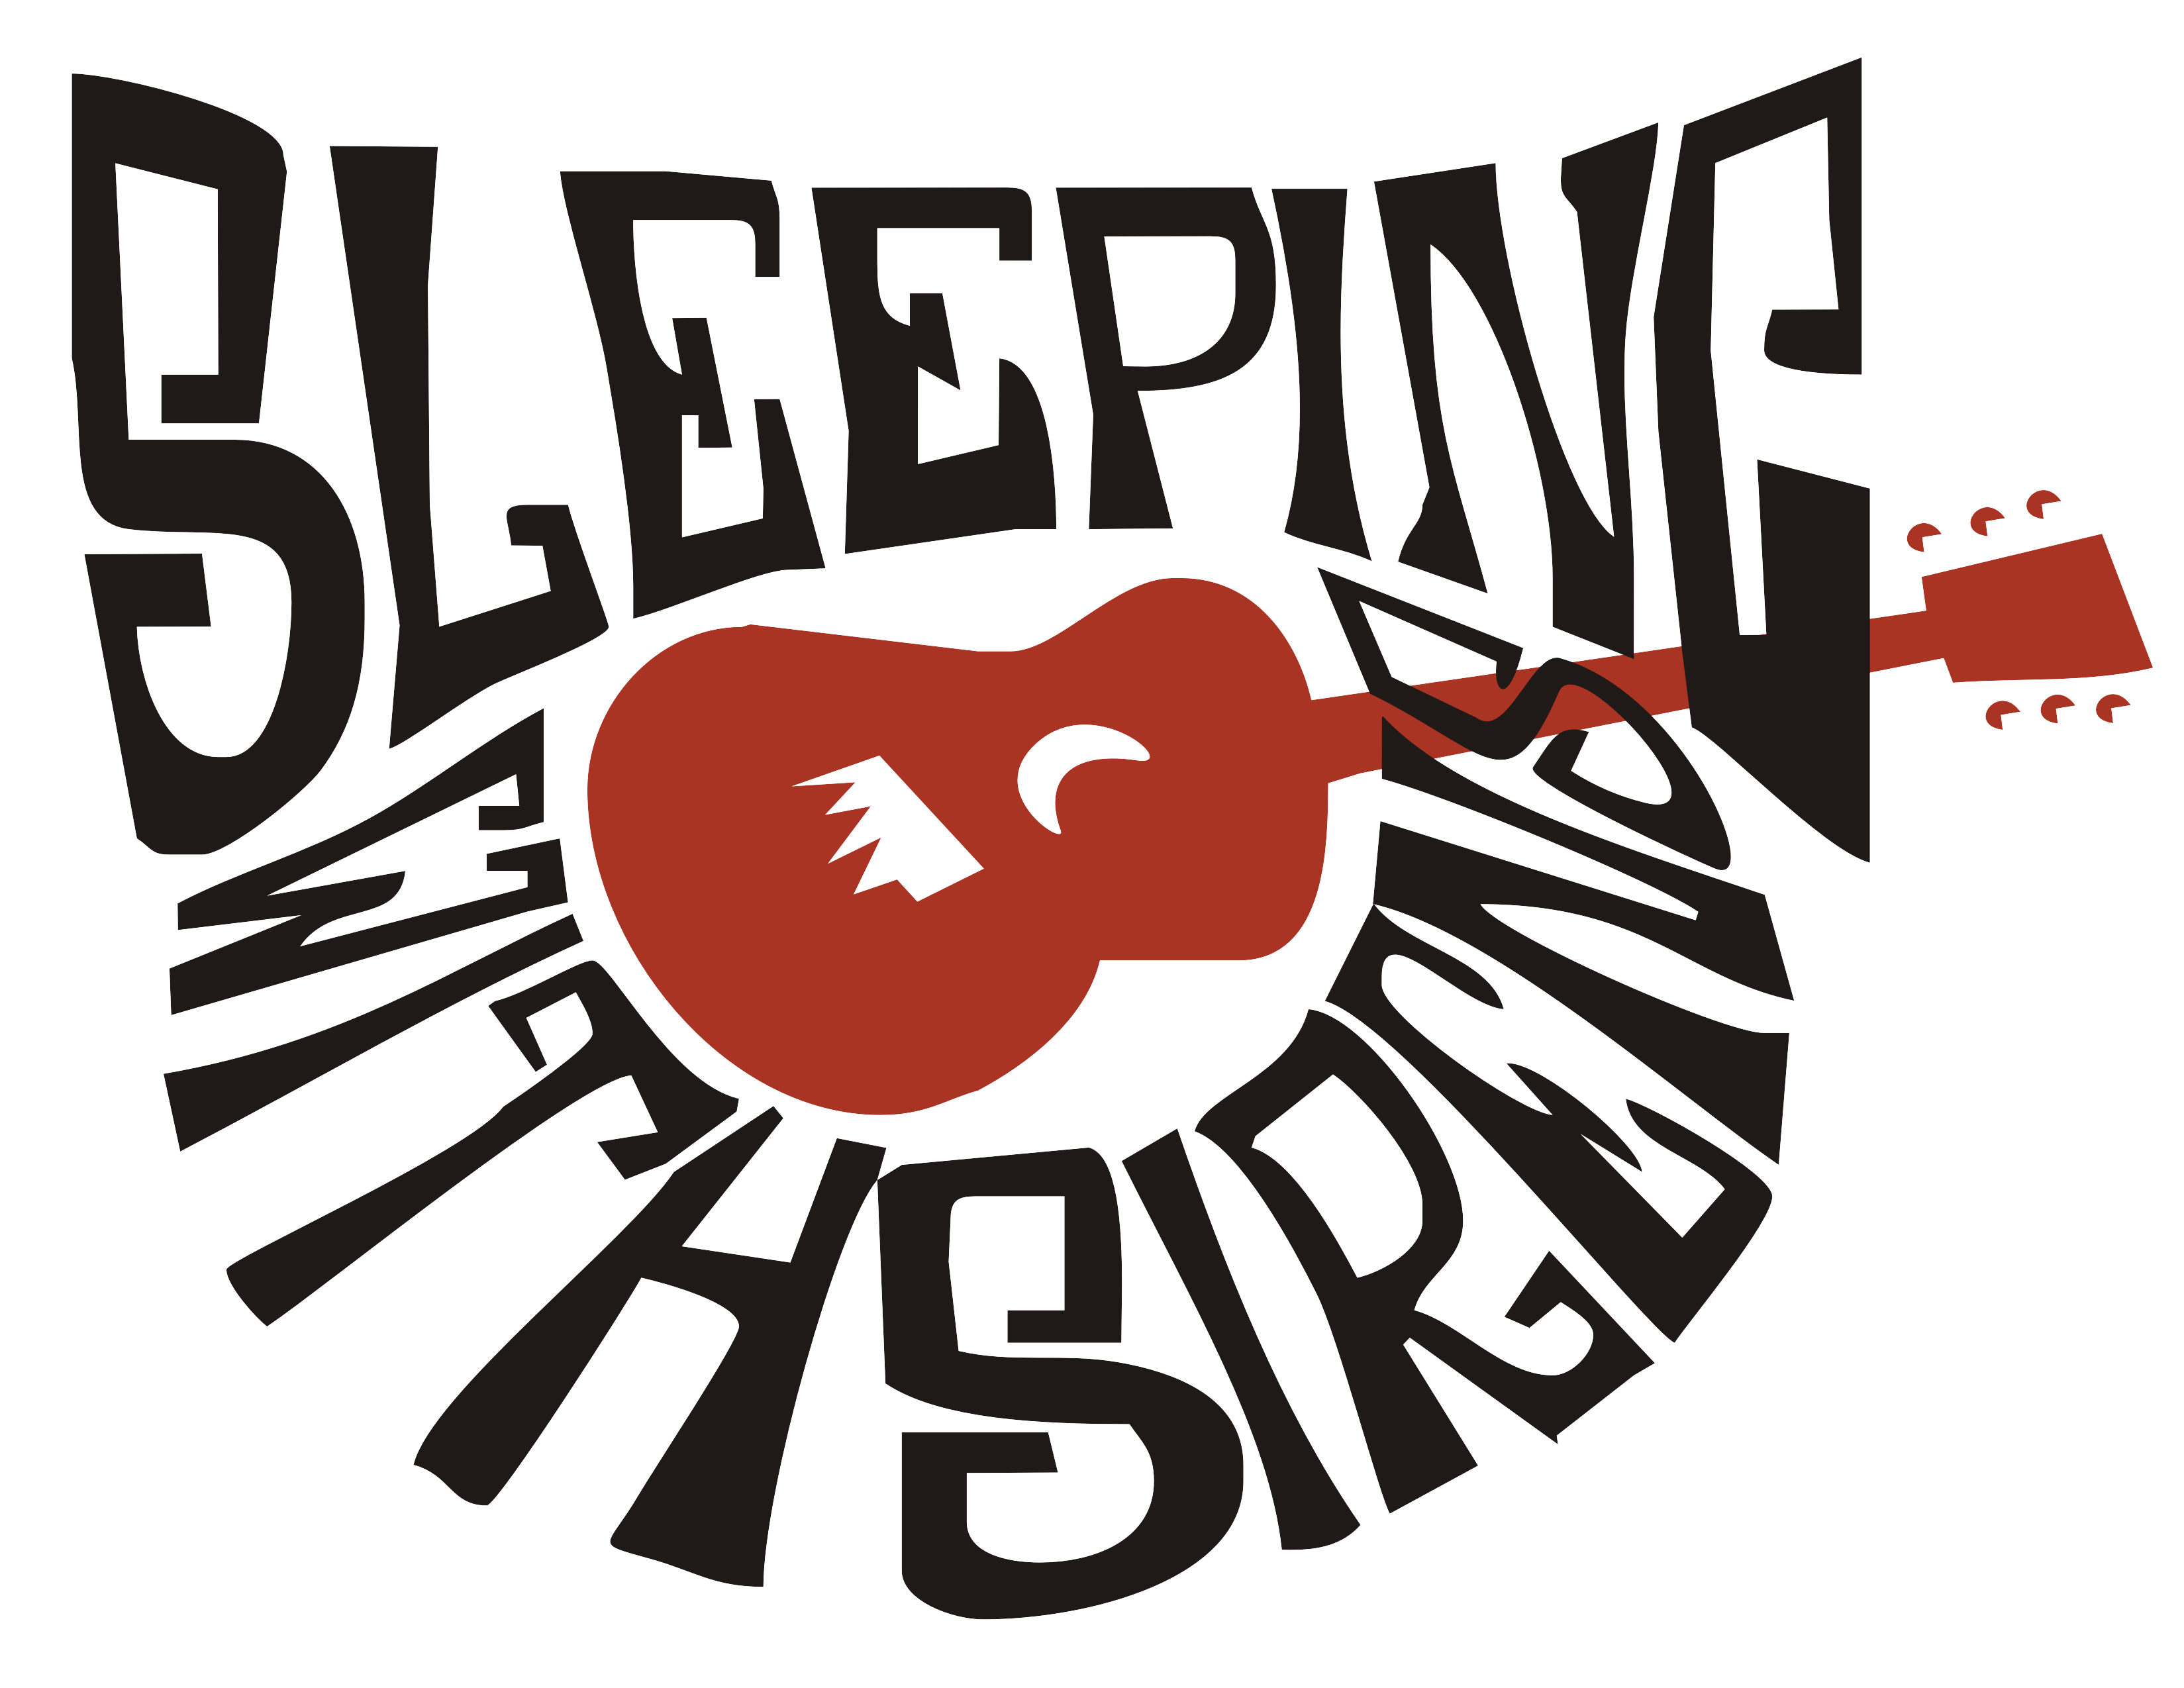 sleeping with sirens tshirts design by fachrezy on